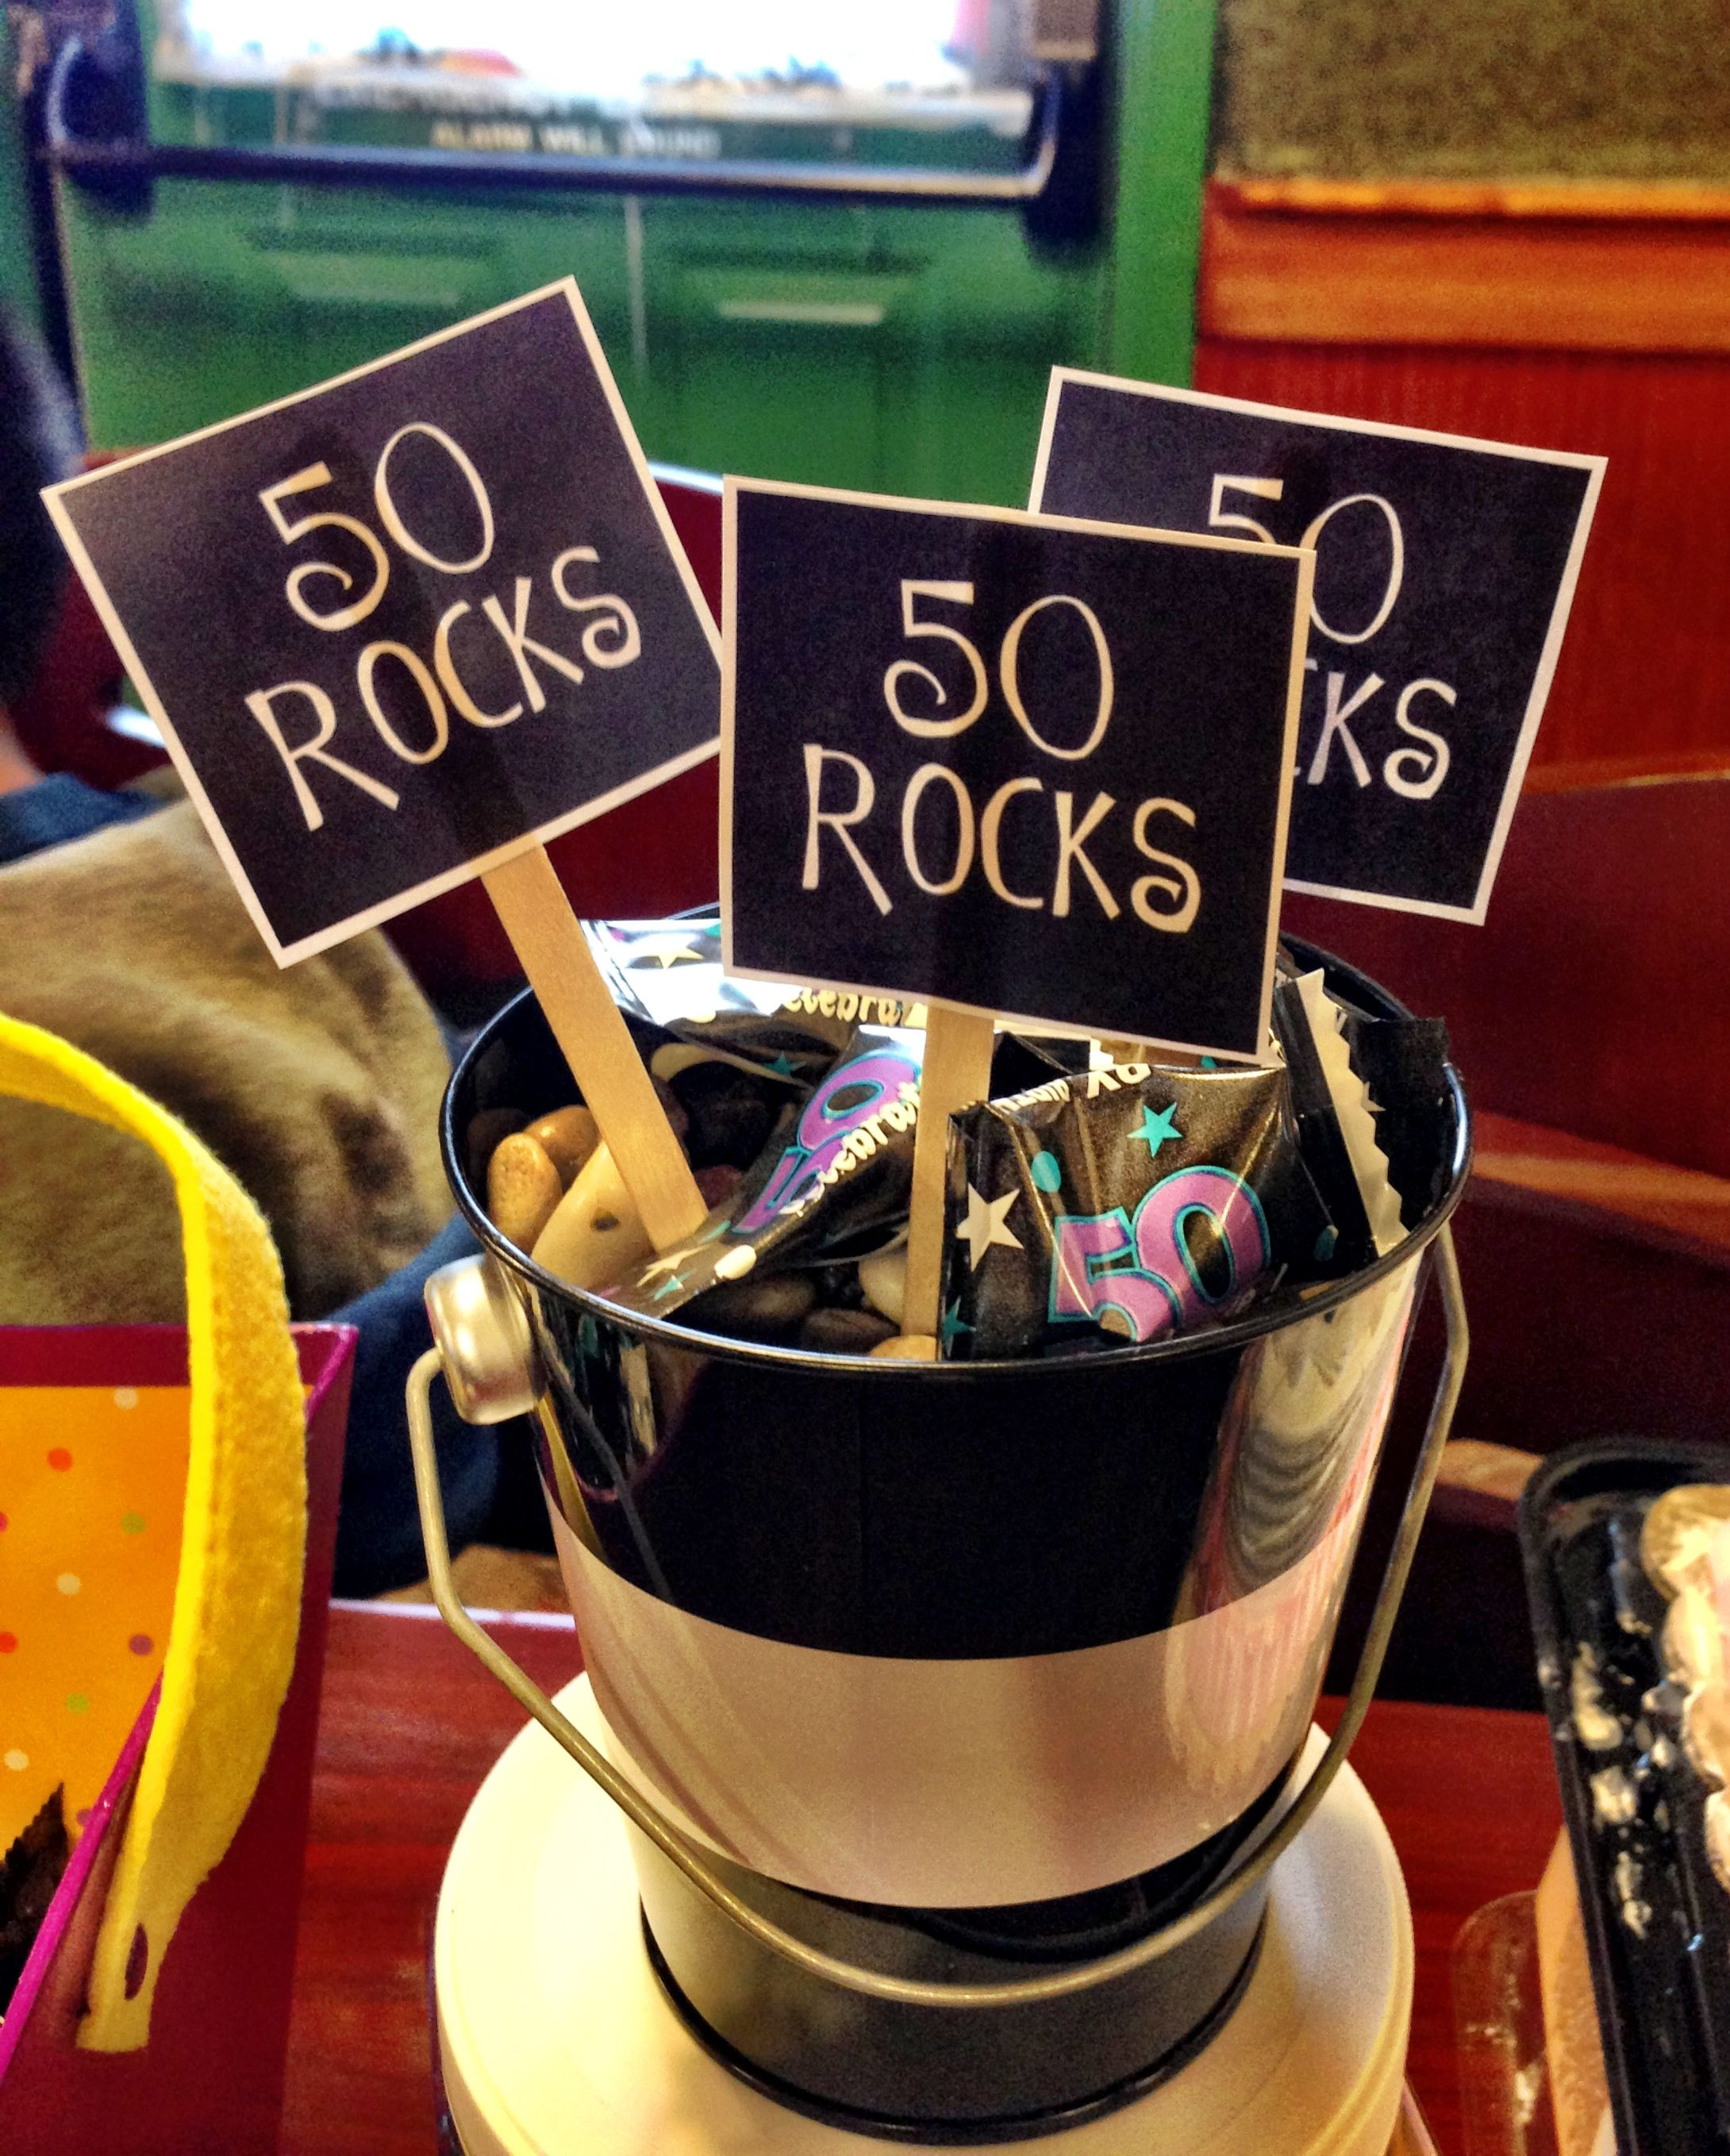 50th Birthday Gift Basket For Men: 50 Rocks! Birthday Present Ideas For 50 Year Old